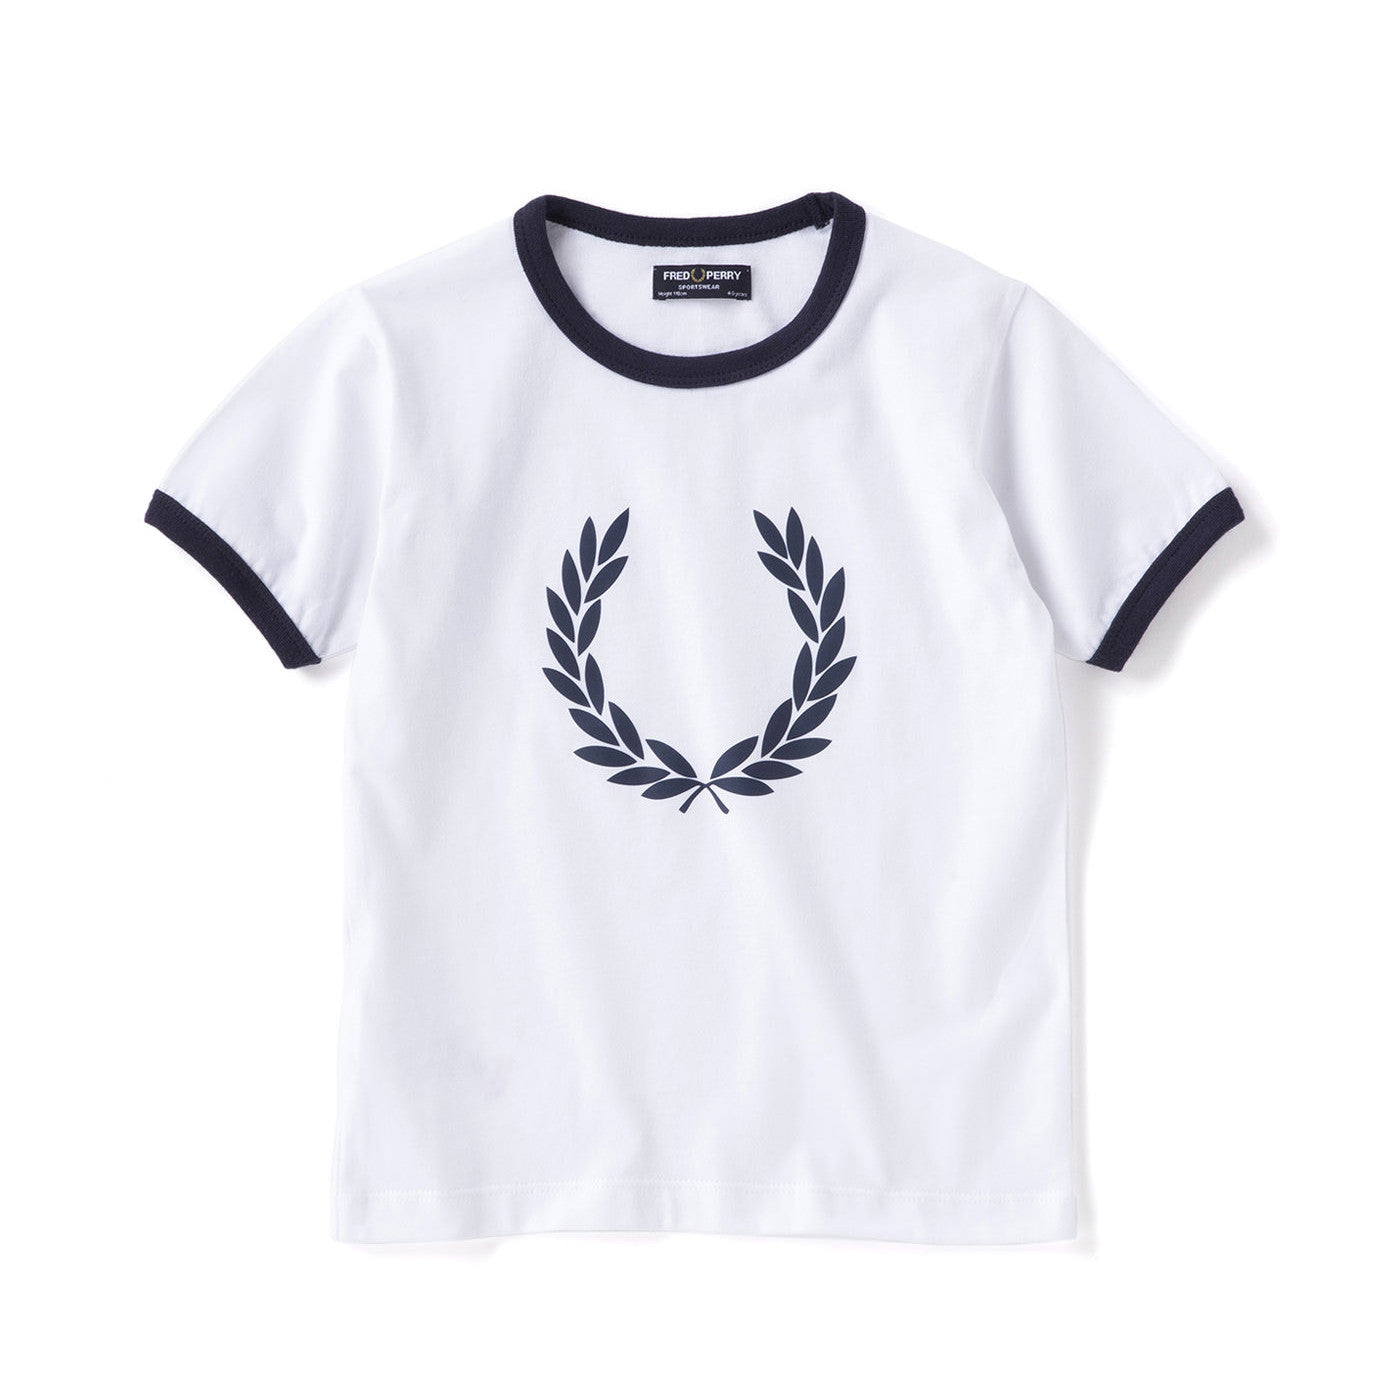 Fred Perry Kids Laurel Wreath Ringer T-Shirt<p>White